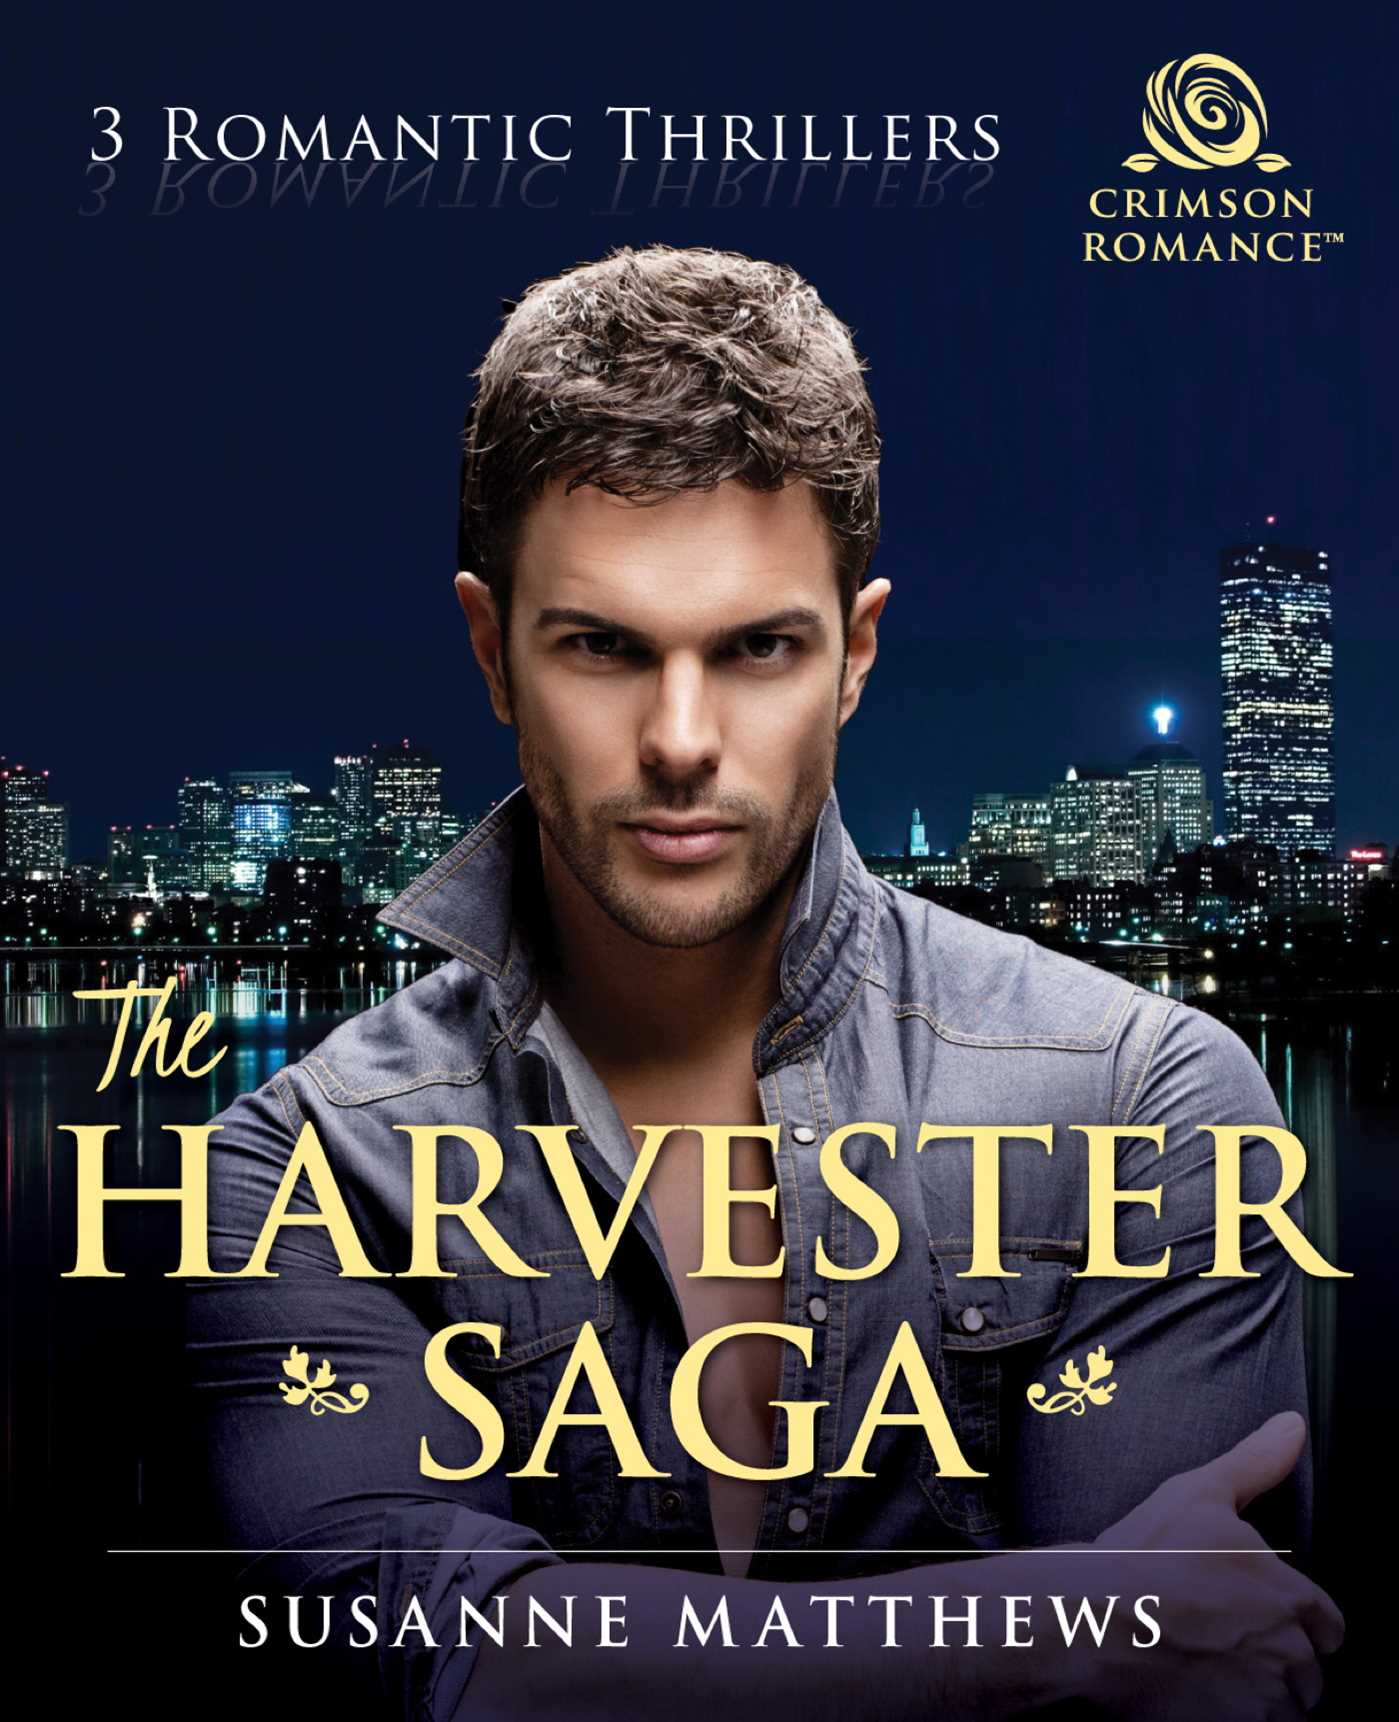 The harvester saga 9781440599637 hr